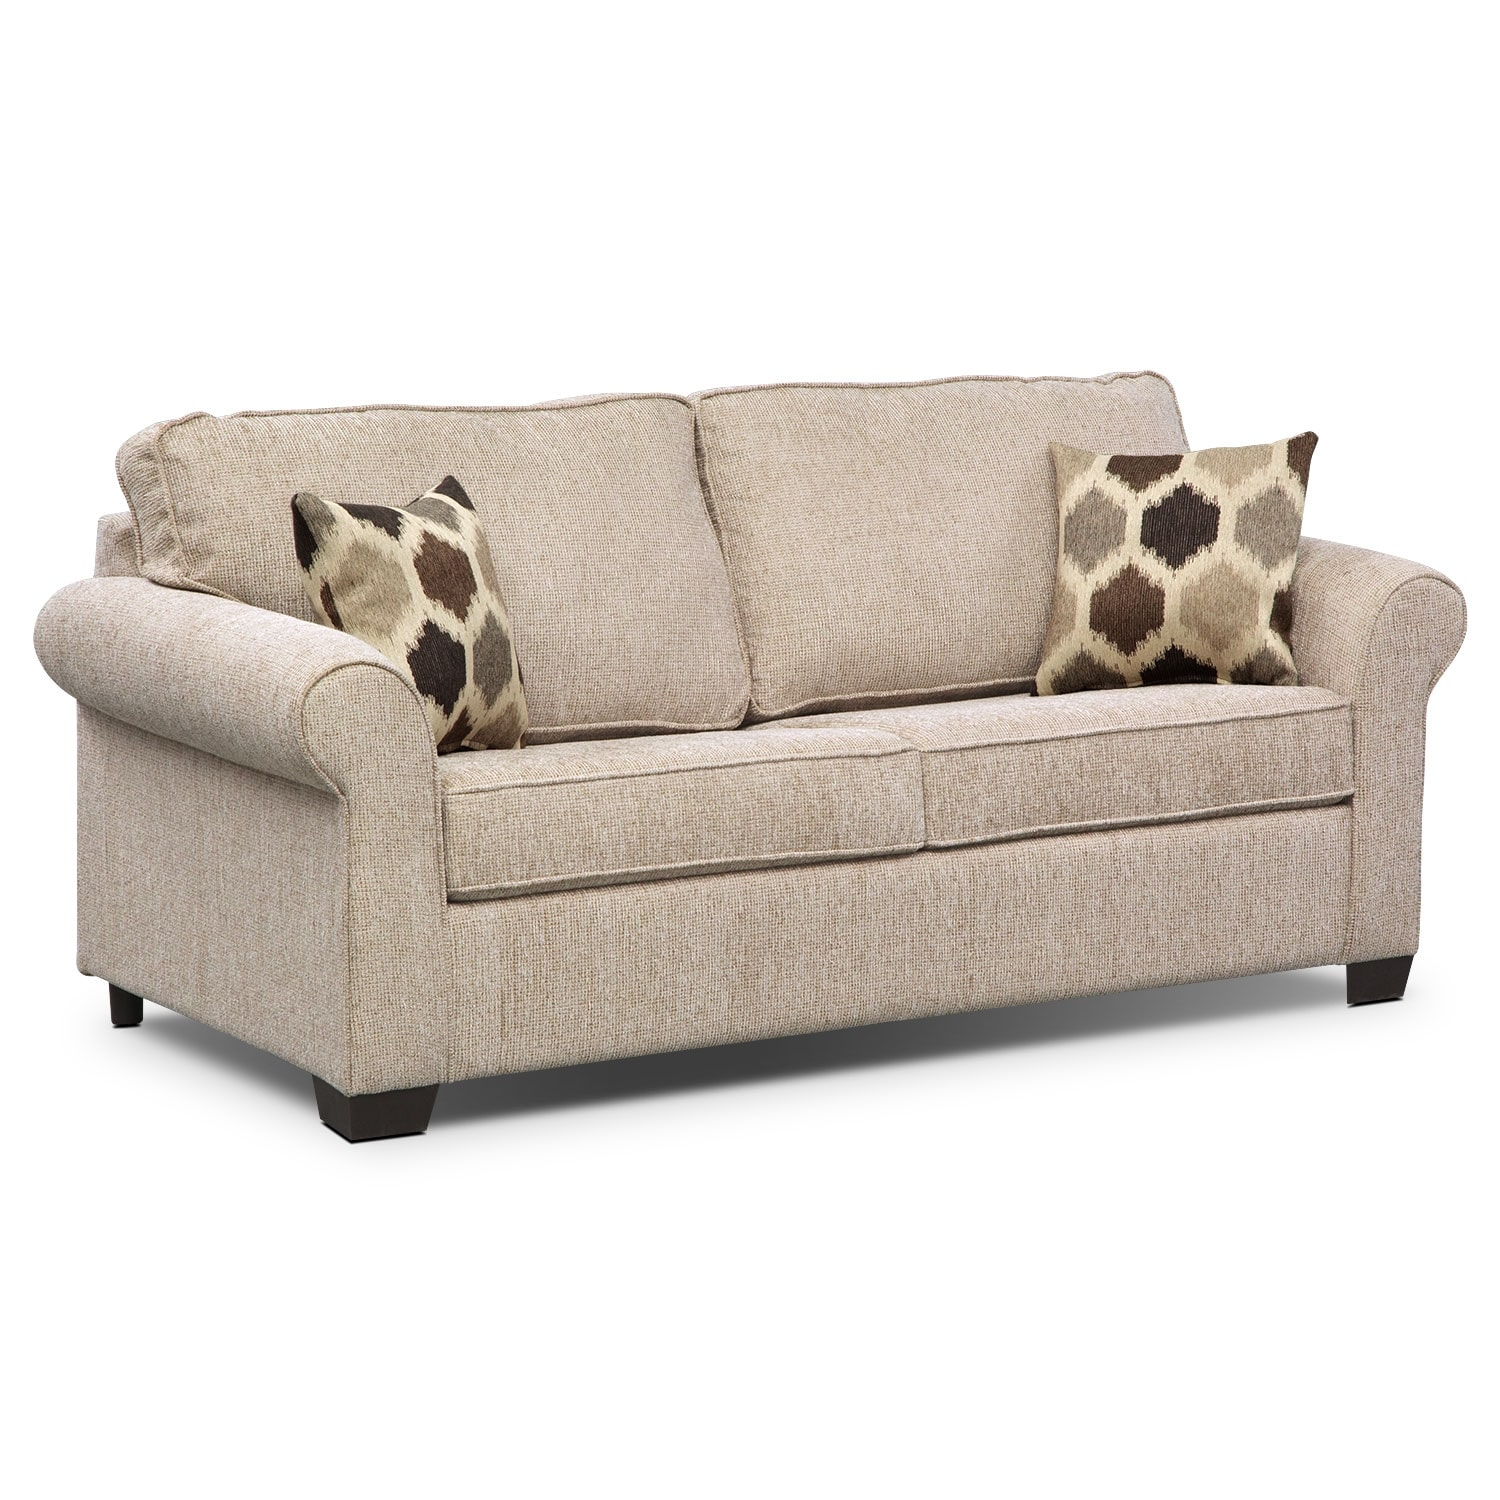 Fletcher Full Memory Foam Sleeper Sofa Beige American  ~ Sleeper Sofa Memory Foam